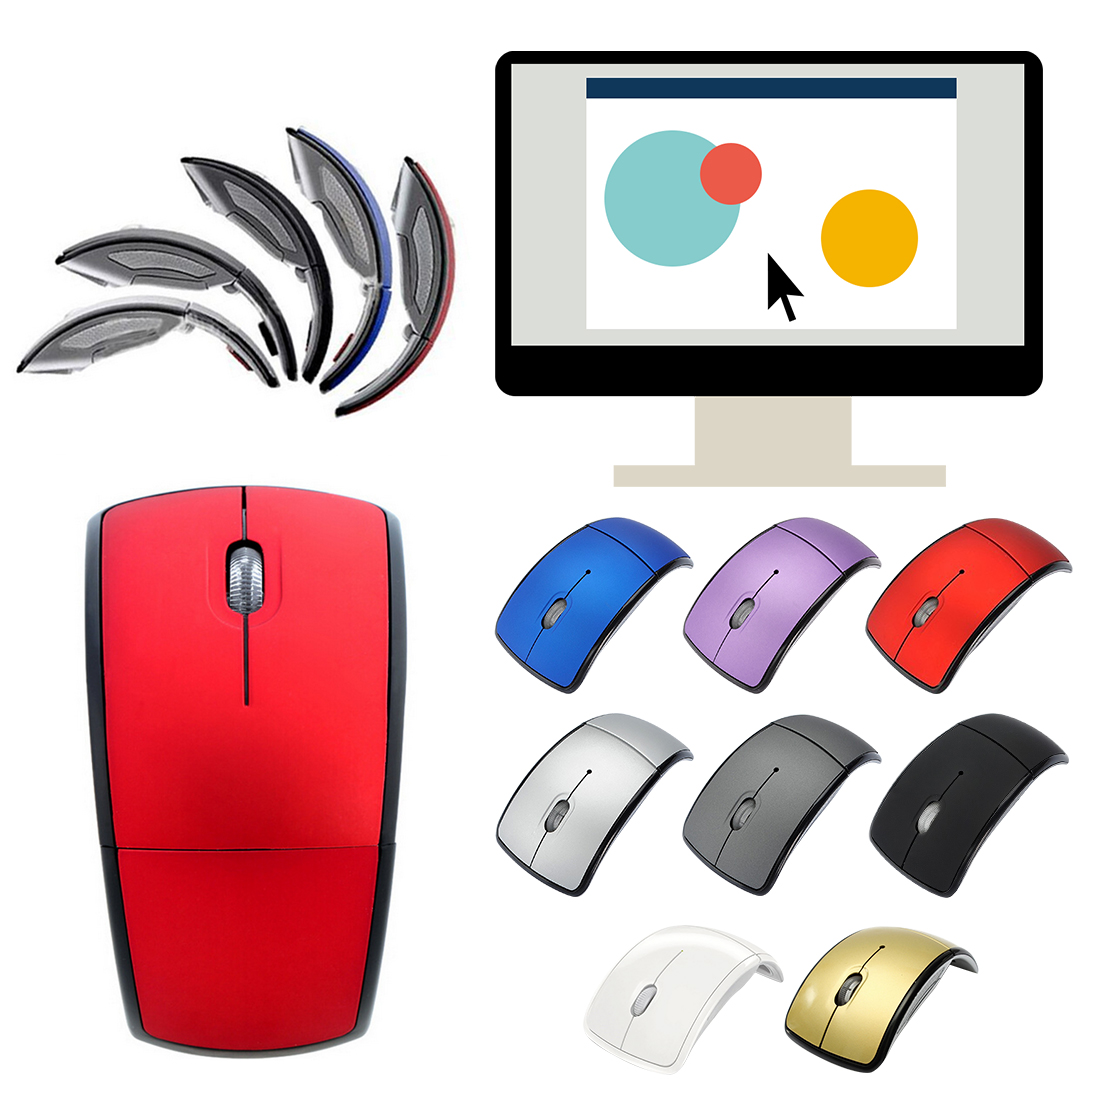 Colorful 2.4Ghz Wireless Mouse Computer Mouses Foldable Folding Optical Mice USB Receiver For Laptop PC Computer Desktop Office